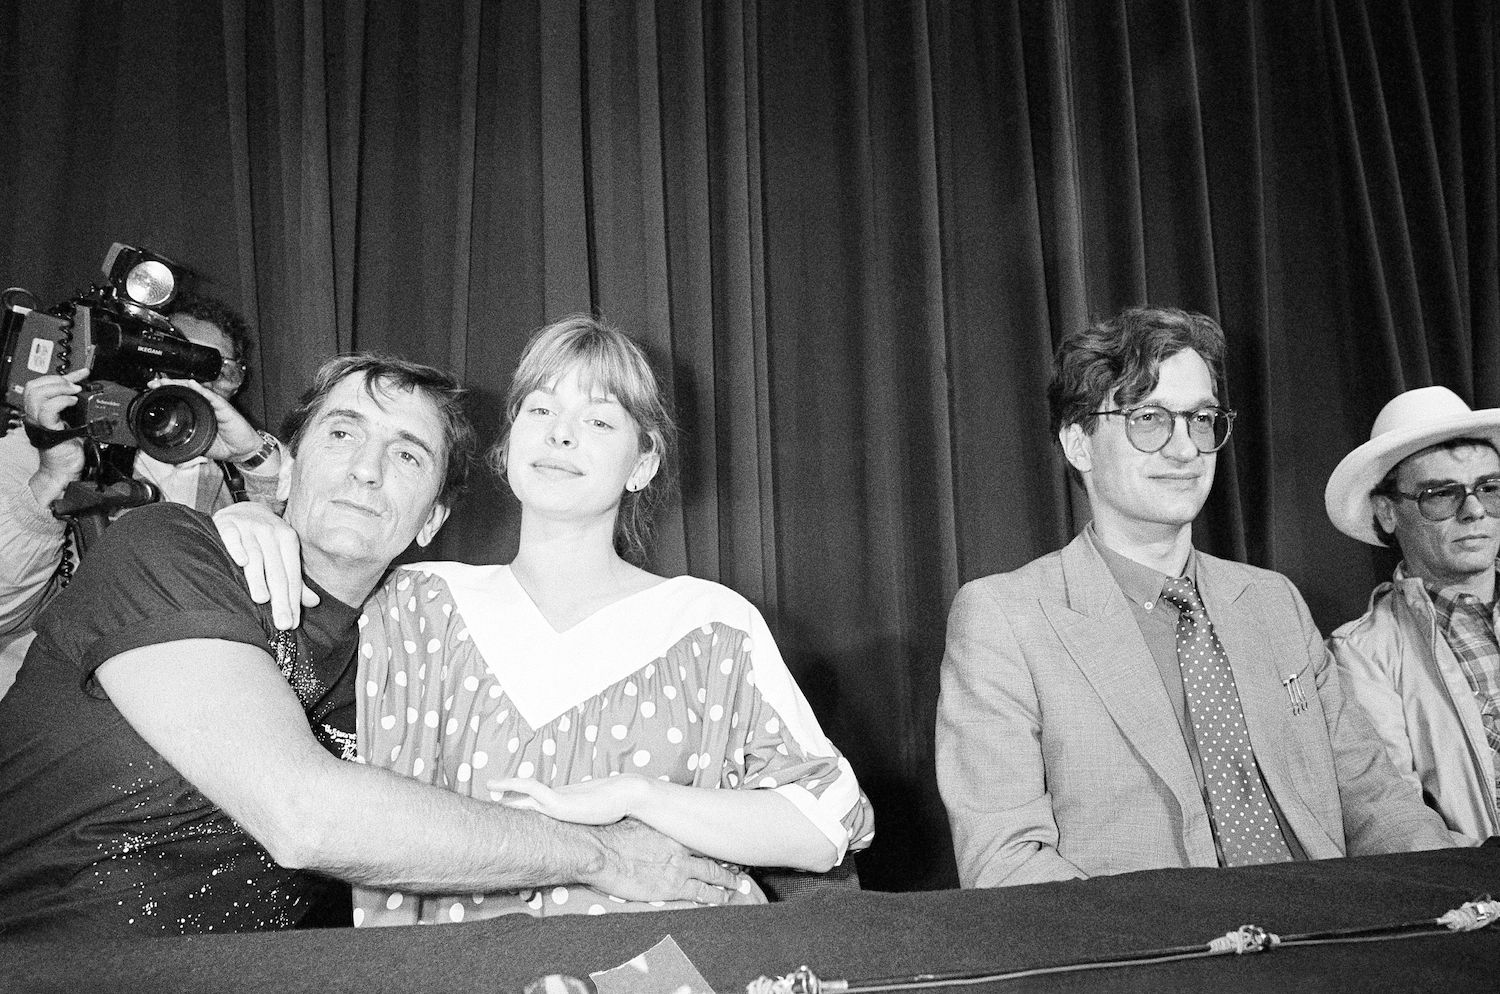 "American actor Harry Dean Stanton and German actress Nastassja Kinski embrace during a photo session at the 37th Cannes Film Festival, . At right are film director Wim Wenders and actor Dean Stockwell. Wenders directed ""Paris, Texas,"" in which Stanton and Kinski star 19 May 1984"